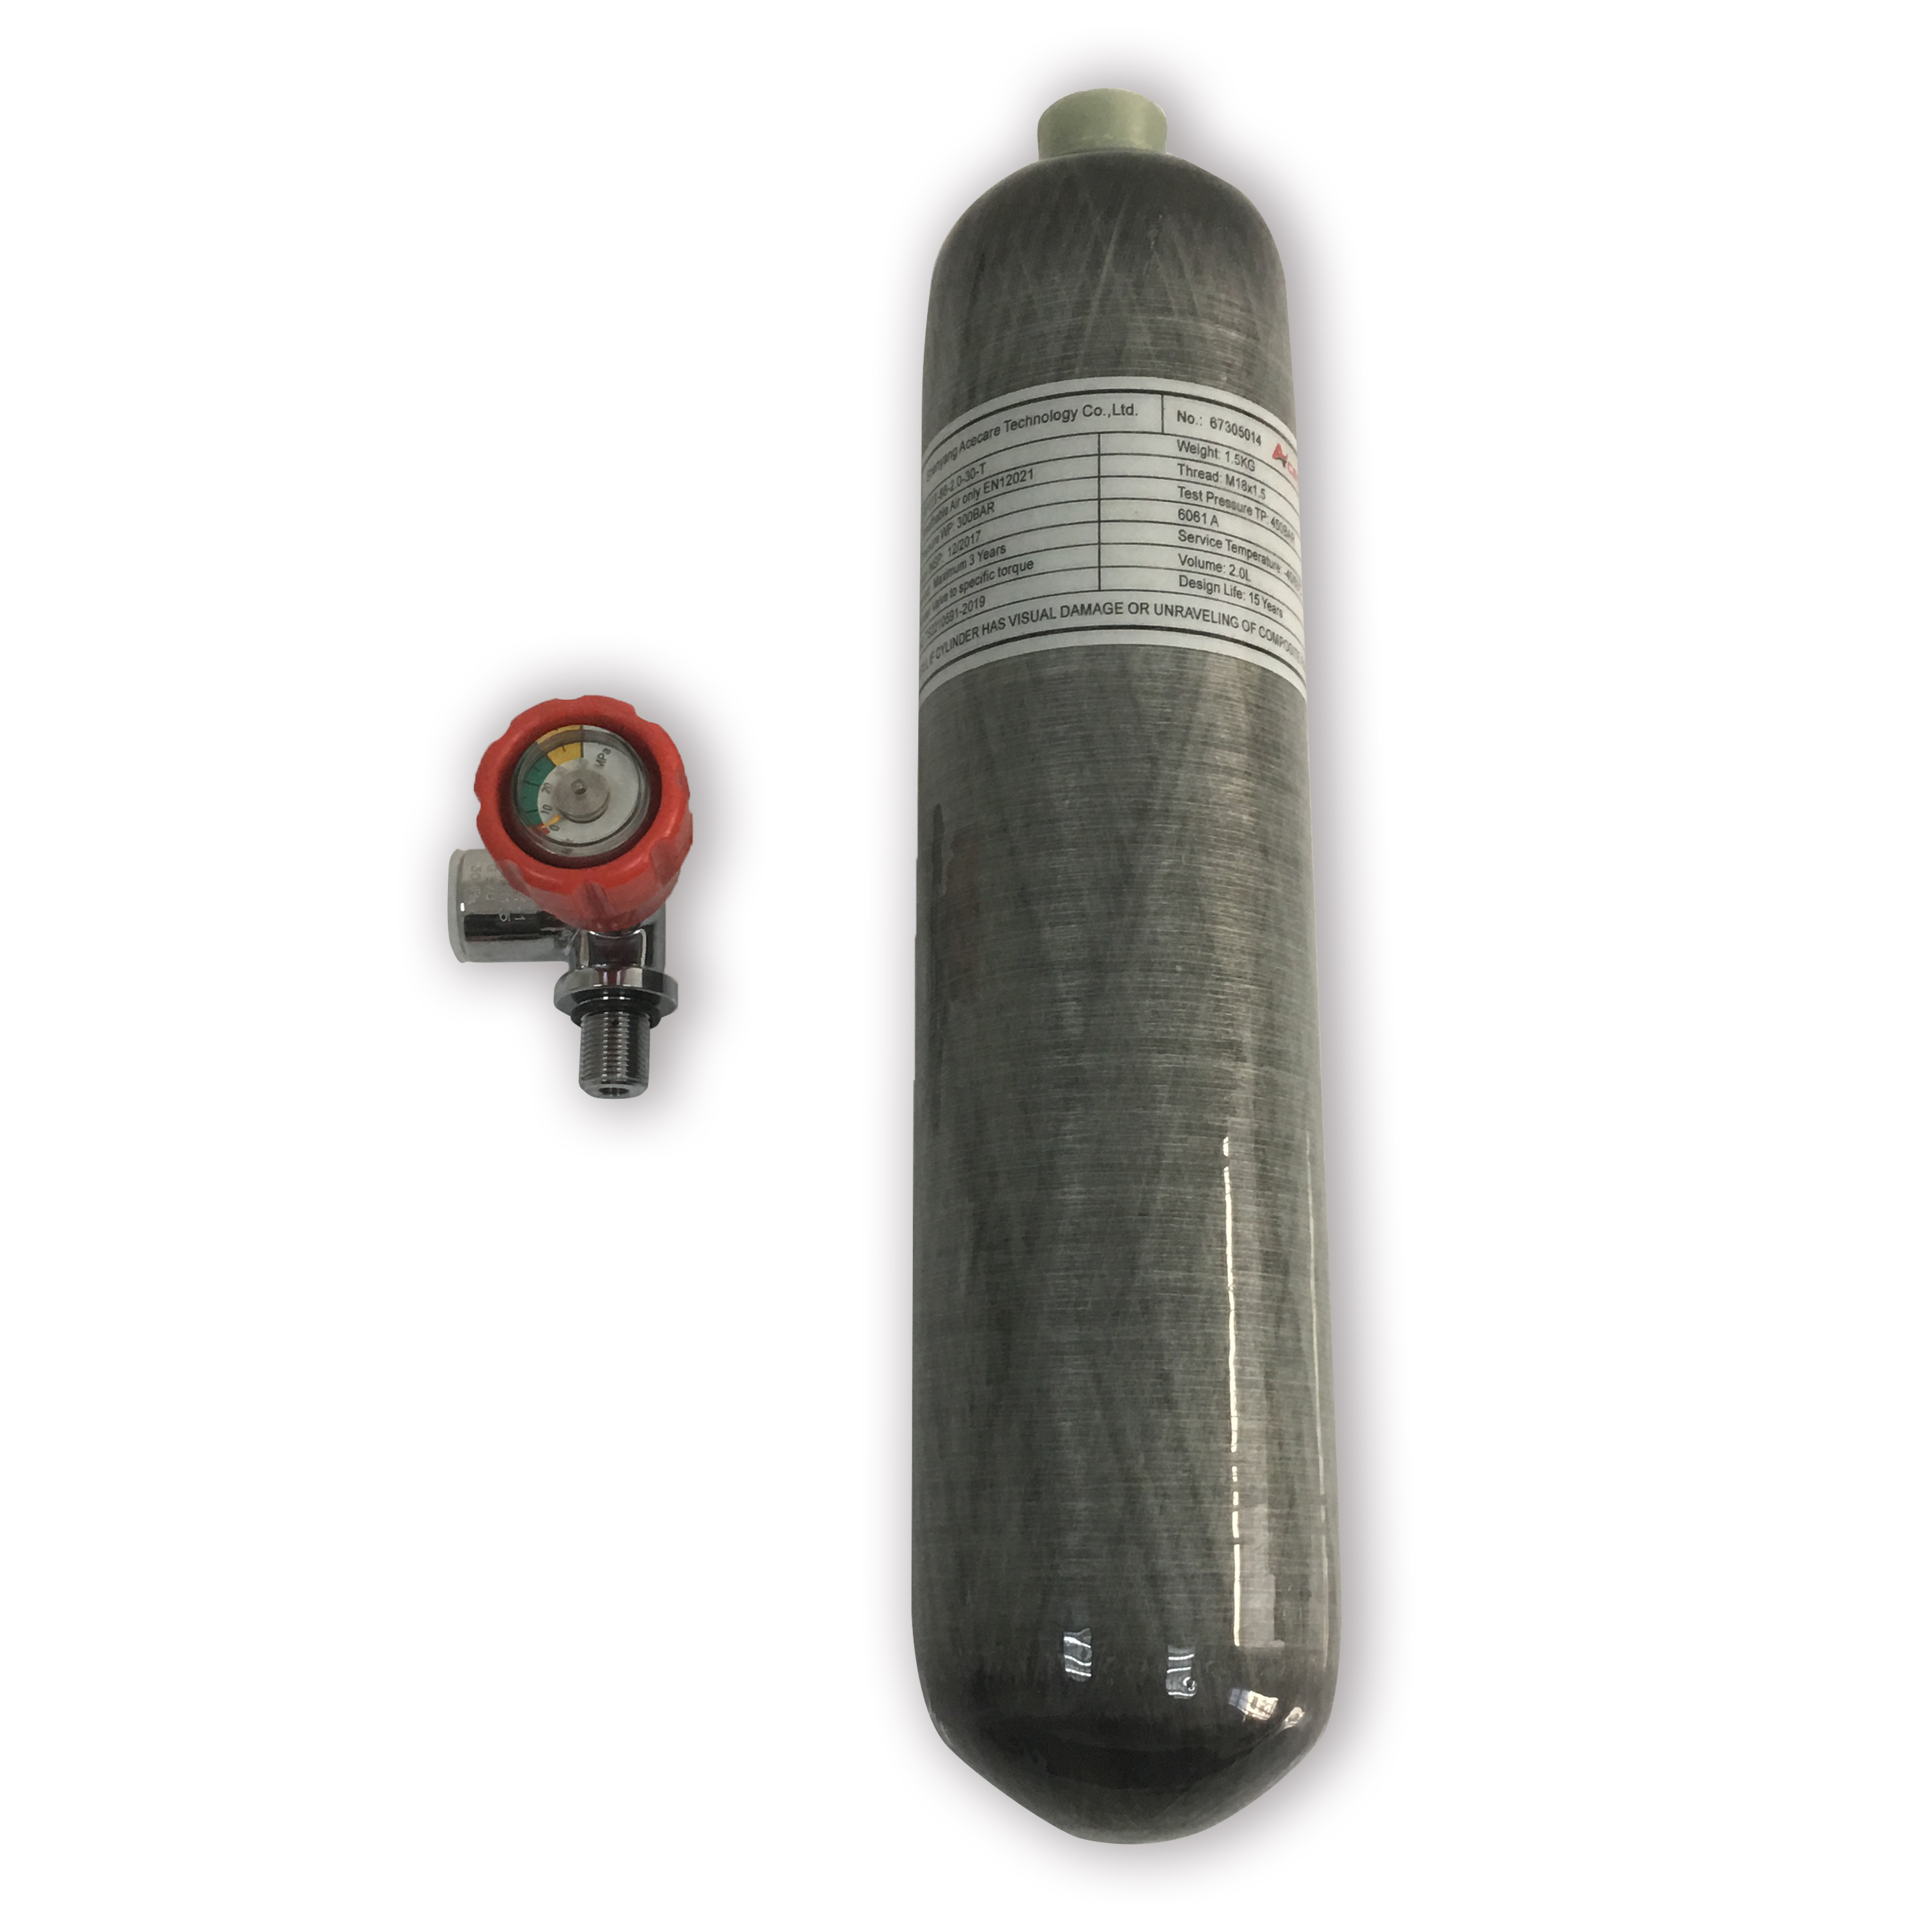 AC10211 Acecare 2L HPA Airforce Compressed Air Tank Cylinder Co2 Paintball Cylinder Pcp 300Bar Pcp Rifle Air Rifle Scuba Diving